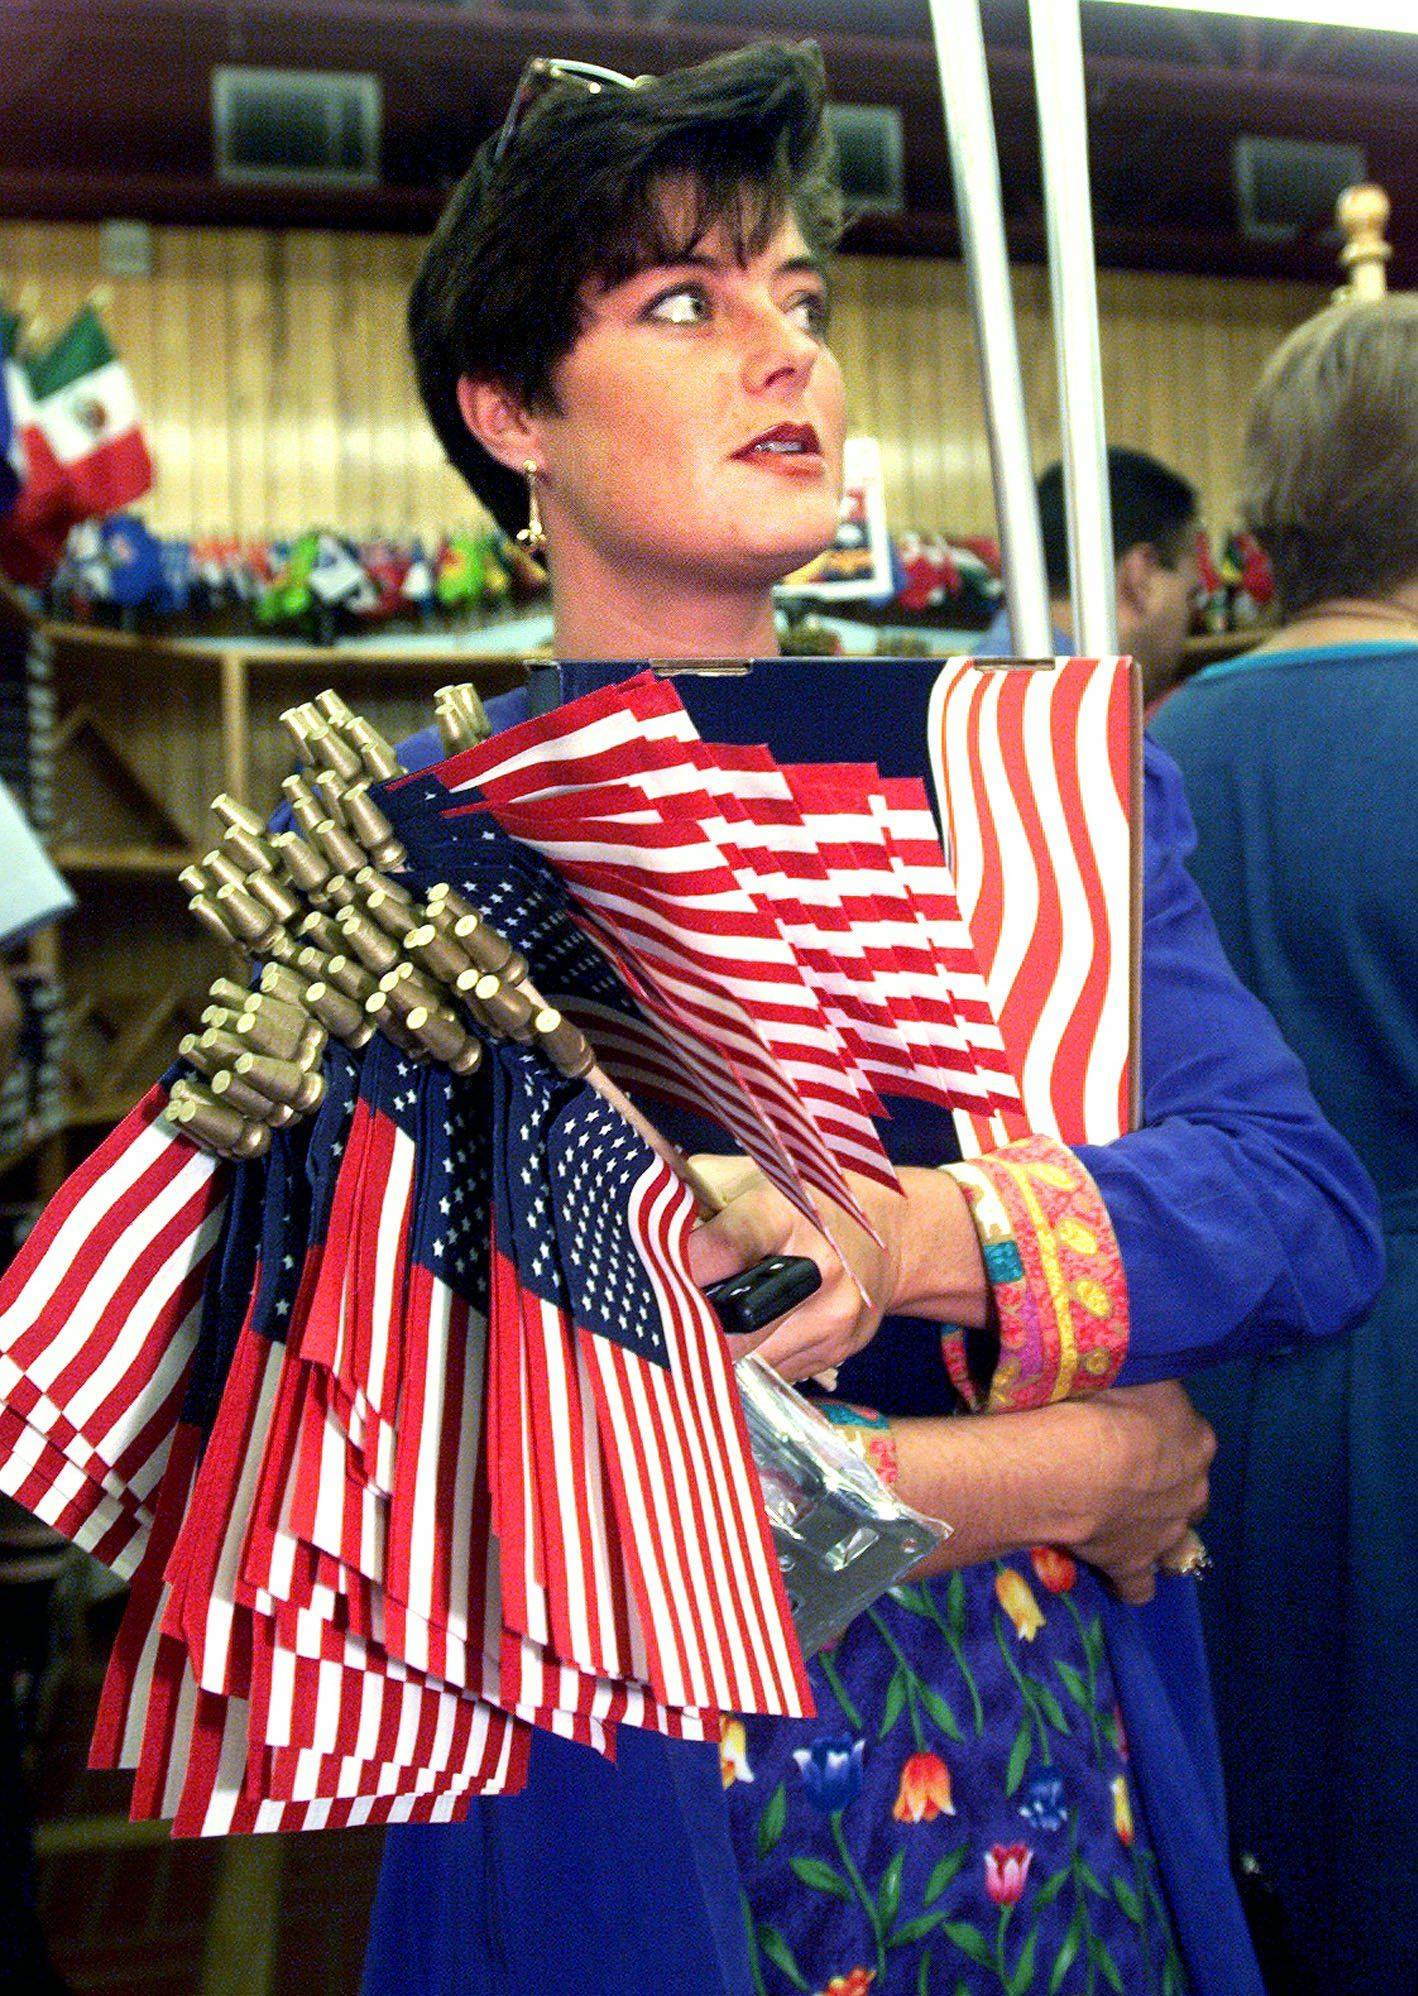 Rachel McMurphy bought dozens of U.S. flags to hand out to her business clients on Sept. 12, 2001, in San Antonio.